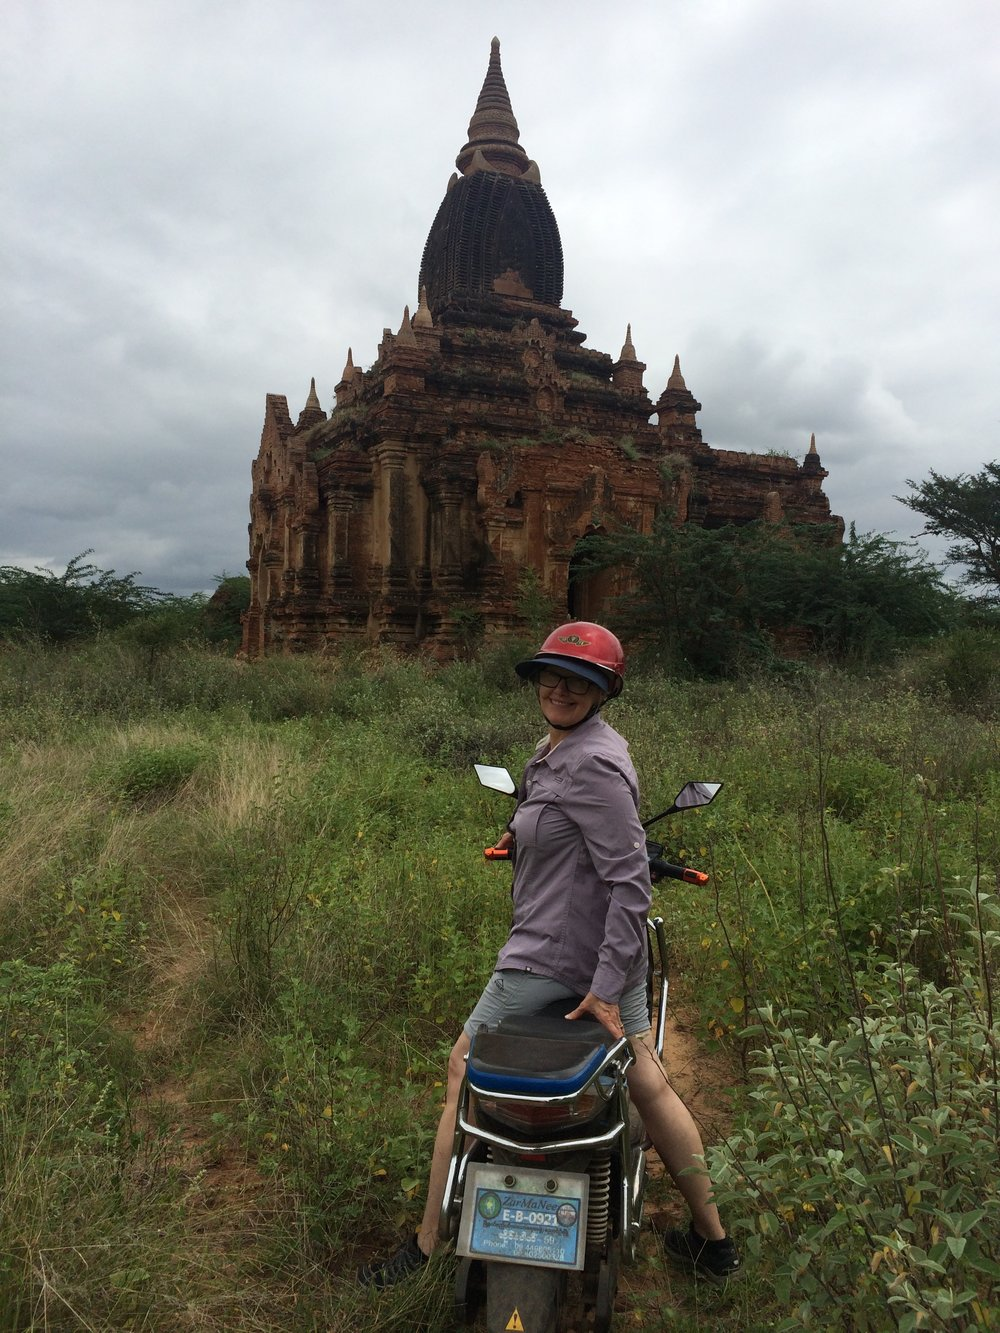 Crossing the fields to the temples